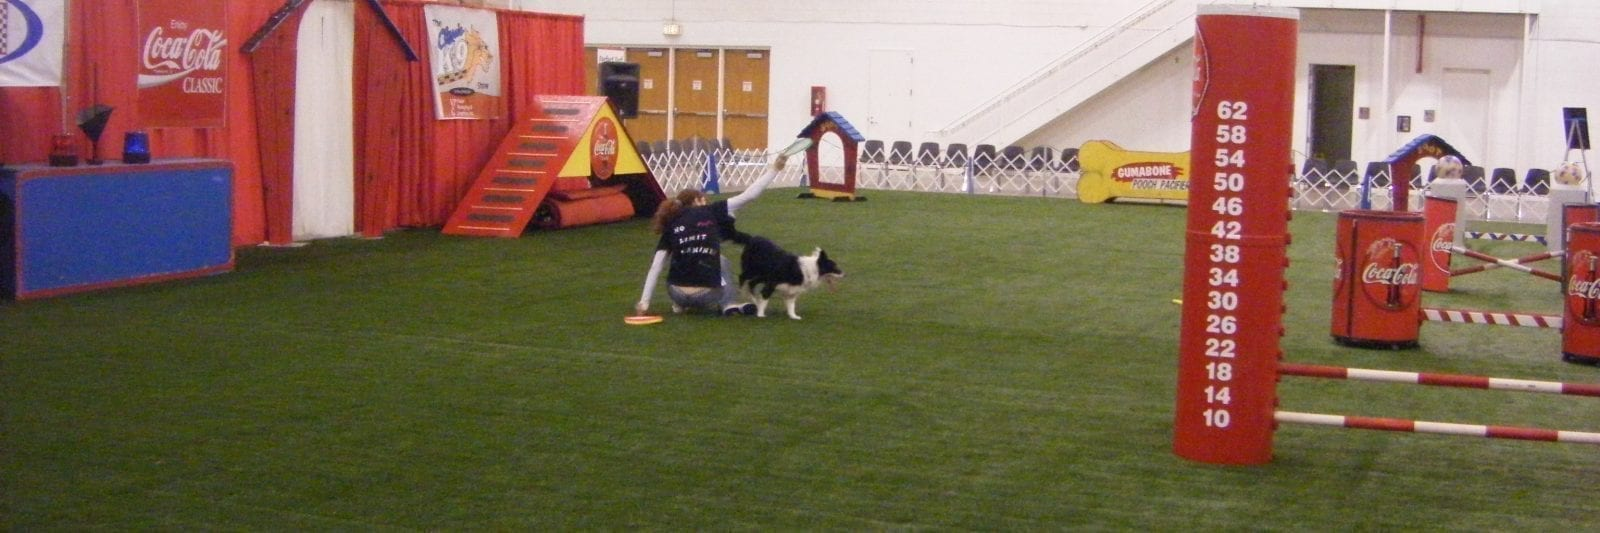 Agility 69 used as a dog agility course